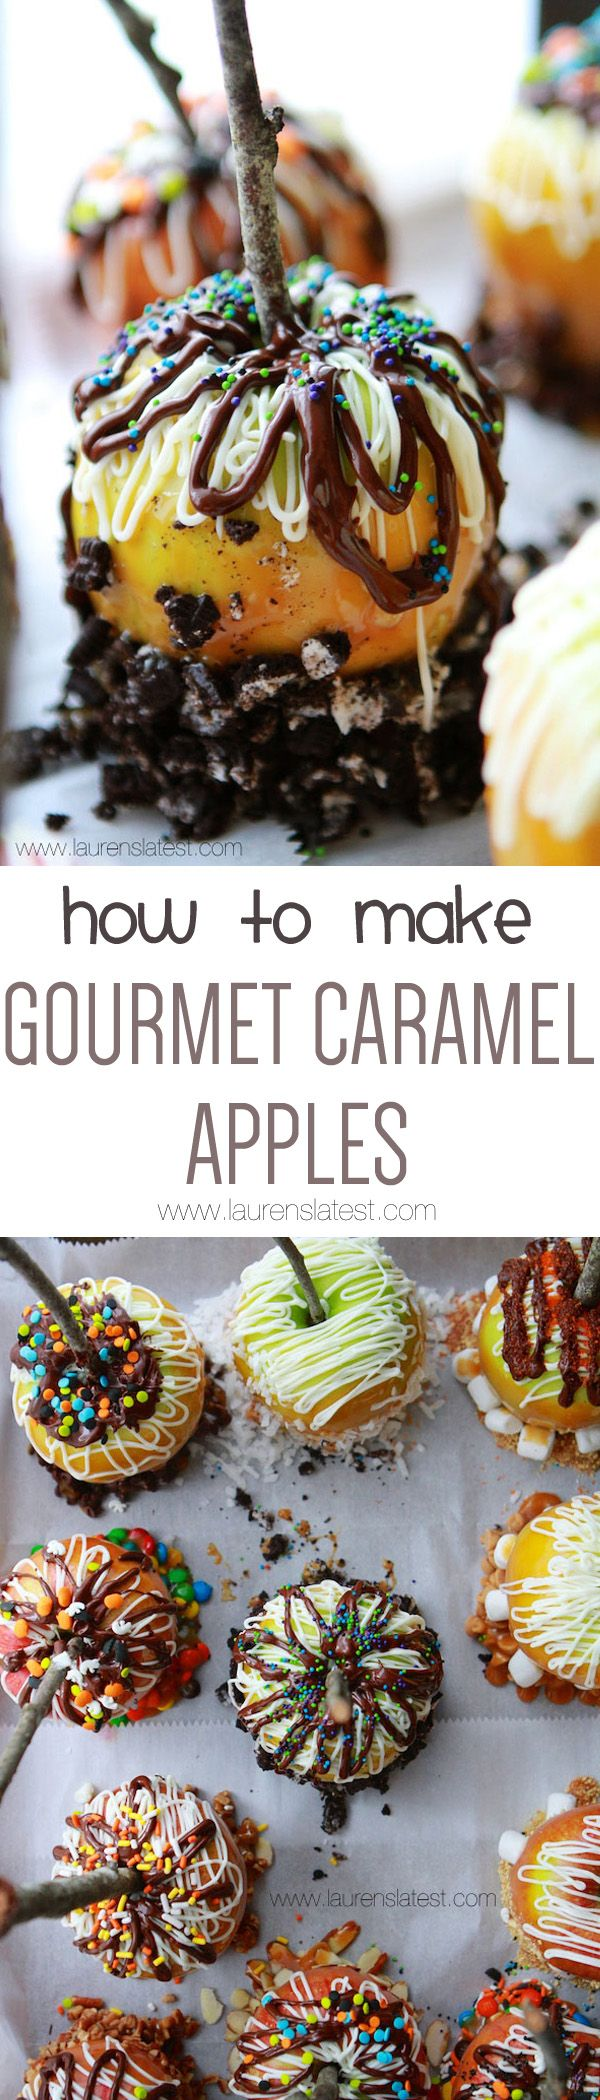 gourmet caramel apples - Gourmet Halloween Recipes